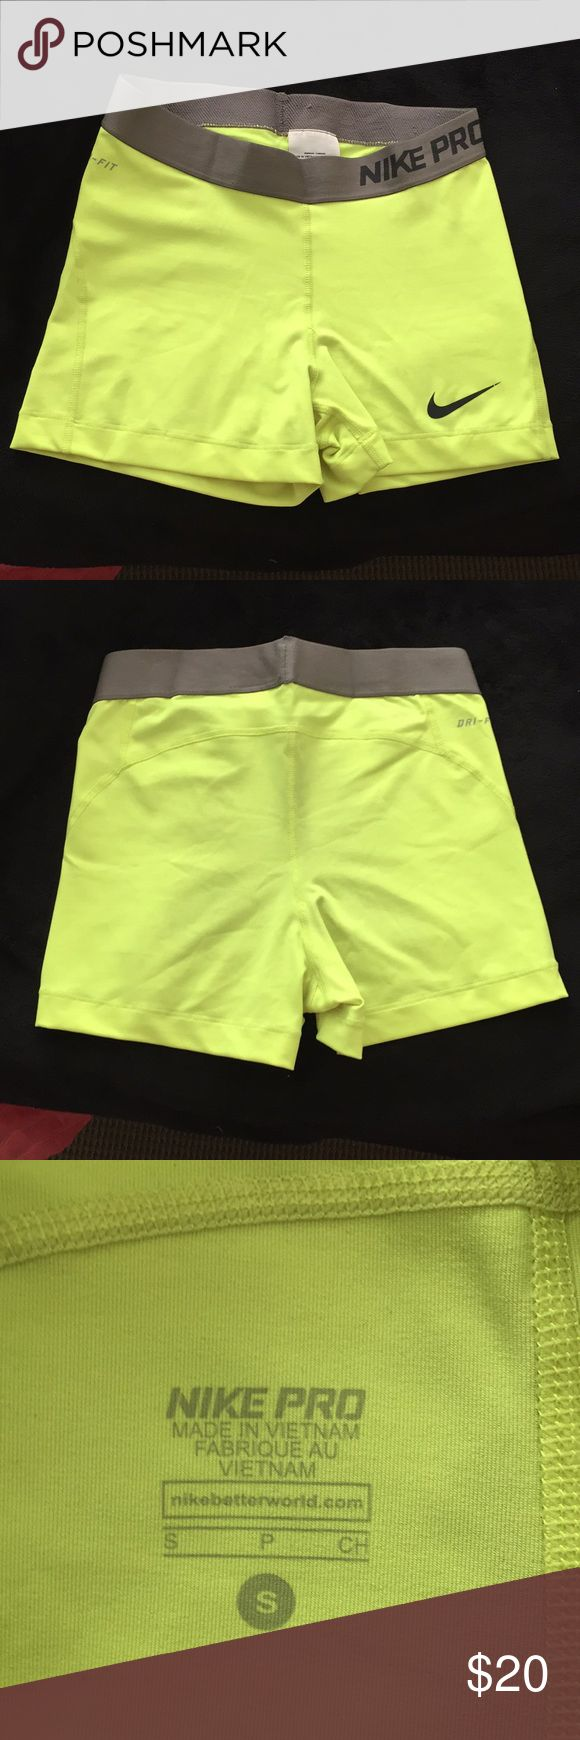 Nike Pro shorts Neon yellow Nike Pro spandex, worn once, good condition, slight pilling on the inside of the waistband Nike Shorts